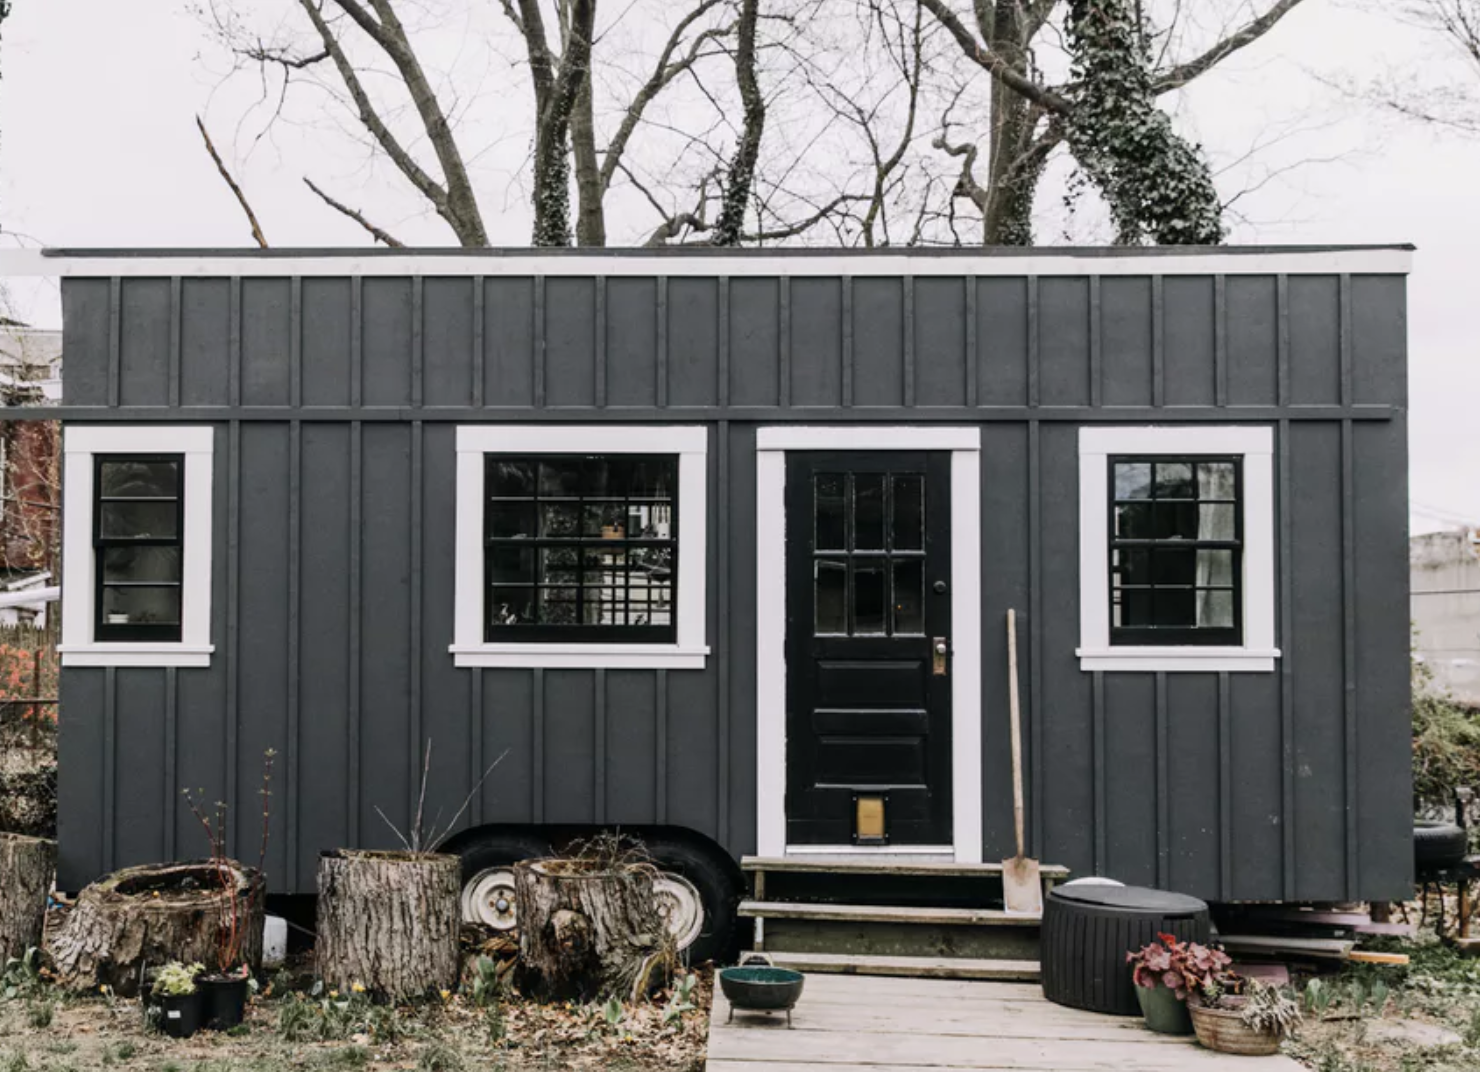 7 Hidden Costs and Complications of Tiny Houses